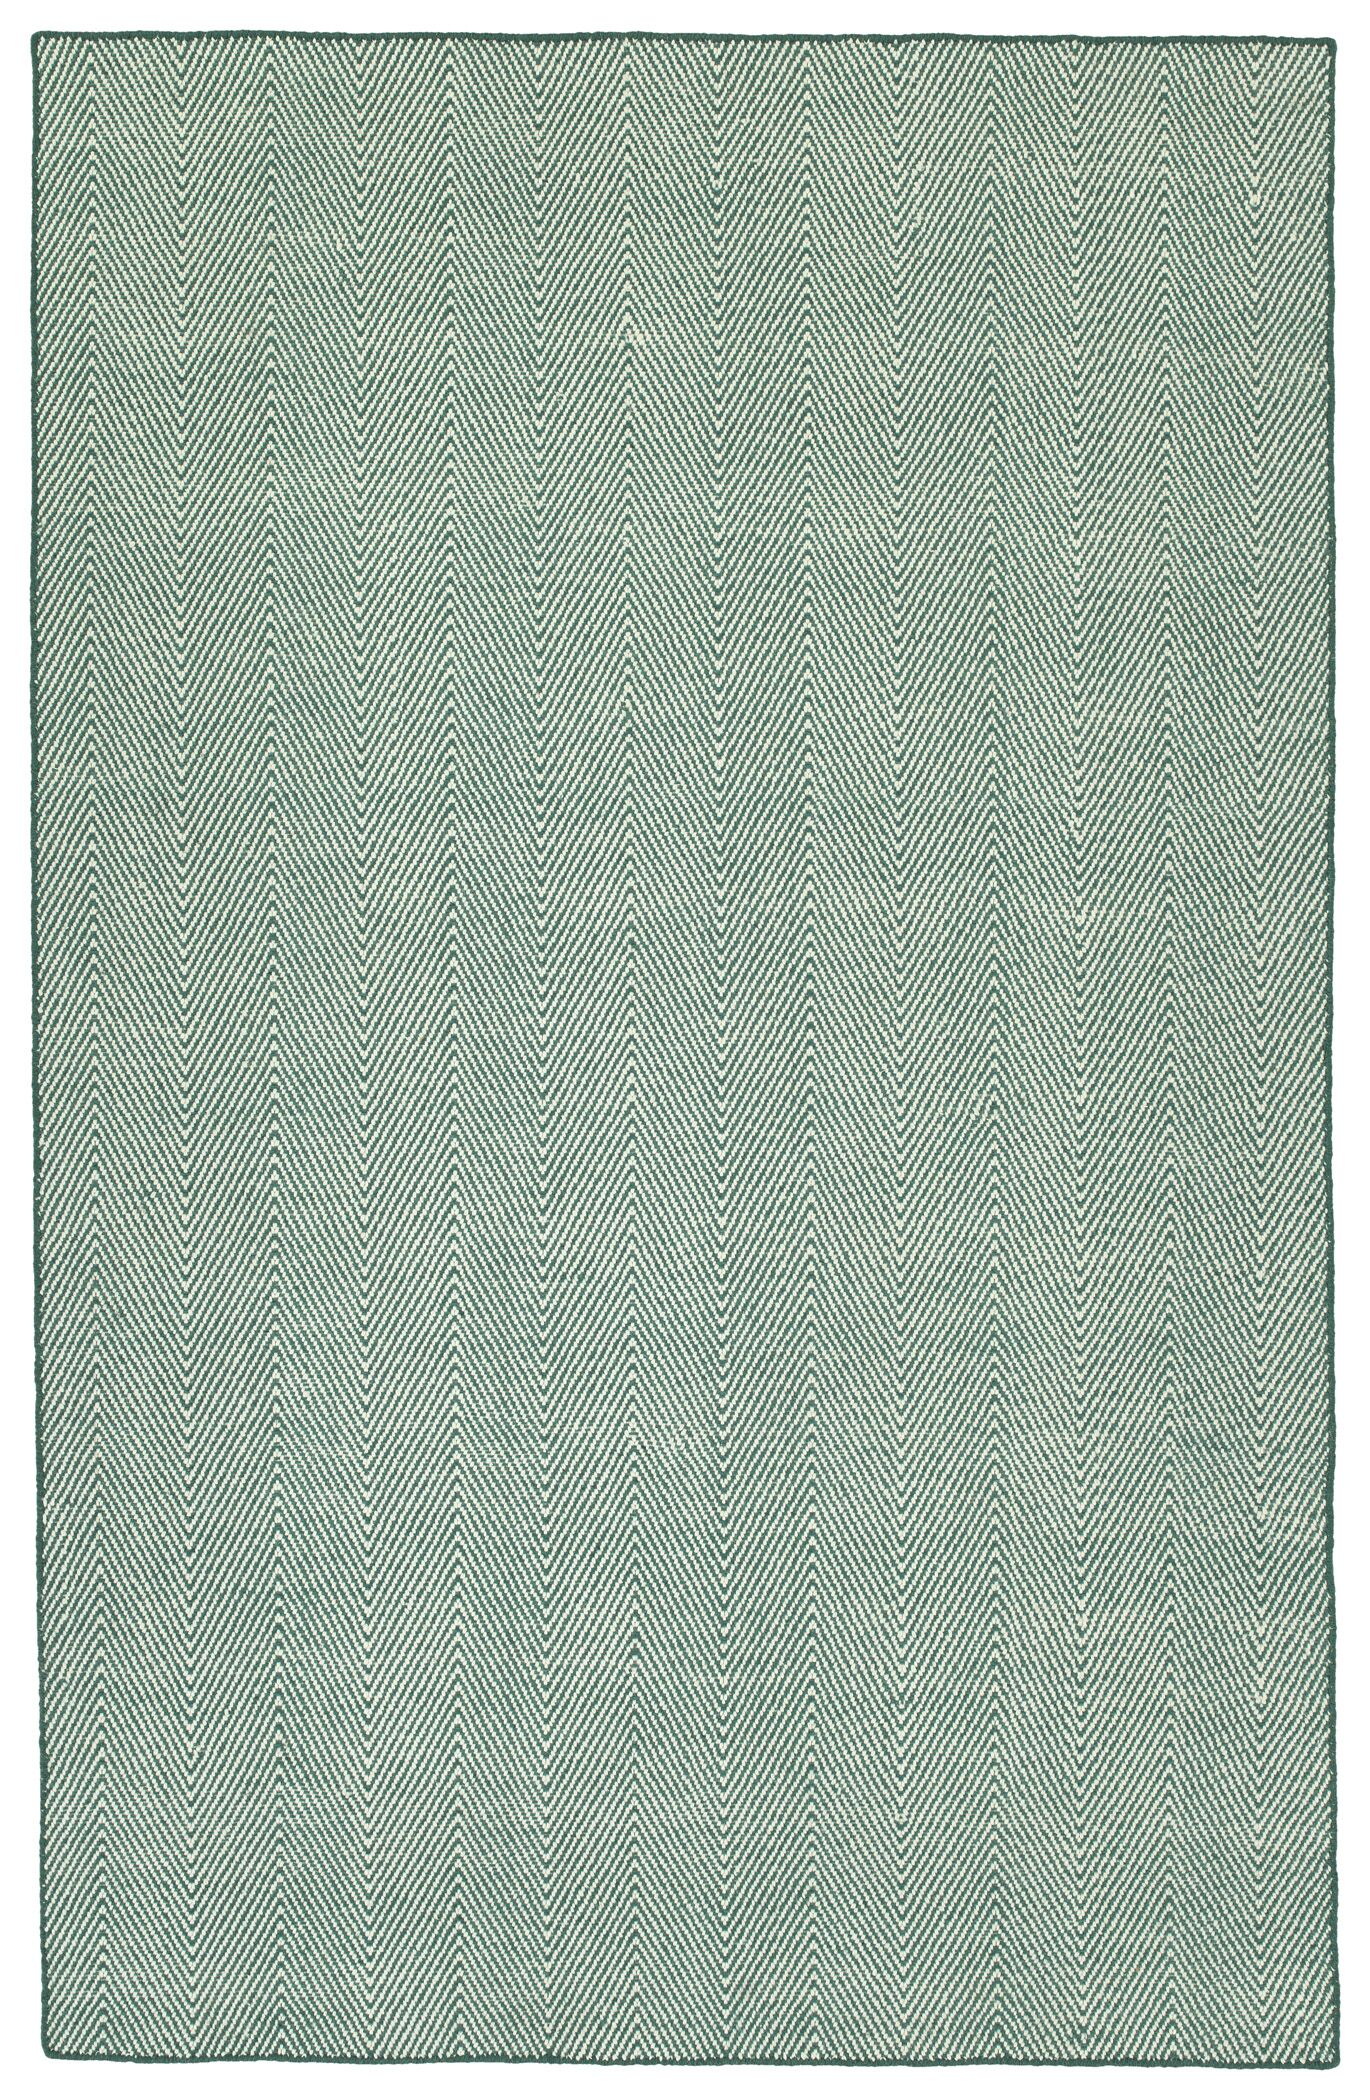 Buell Hand Woven Teal Indoor/Outdoor Area Rug Rug Size: Rectangle 5' x 7'6